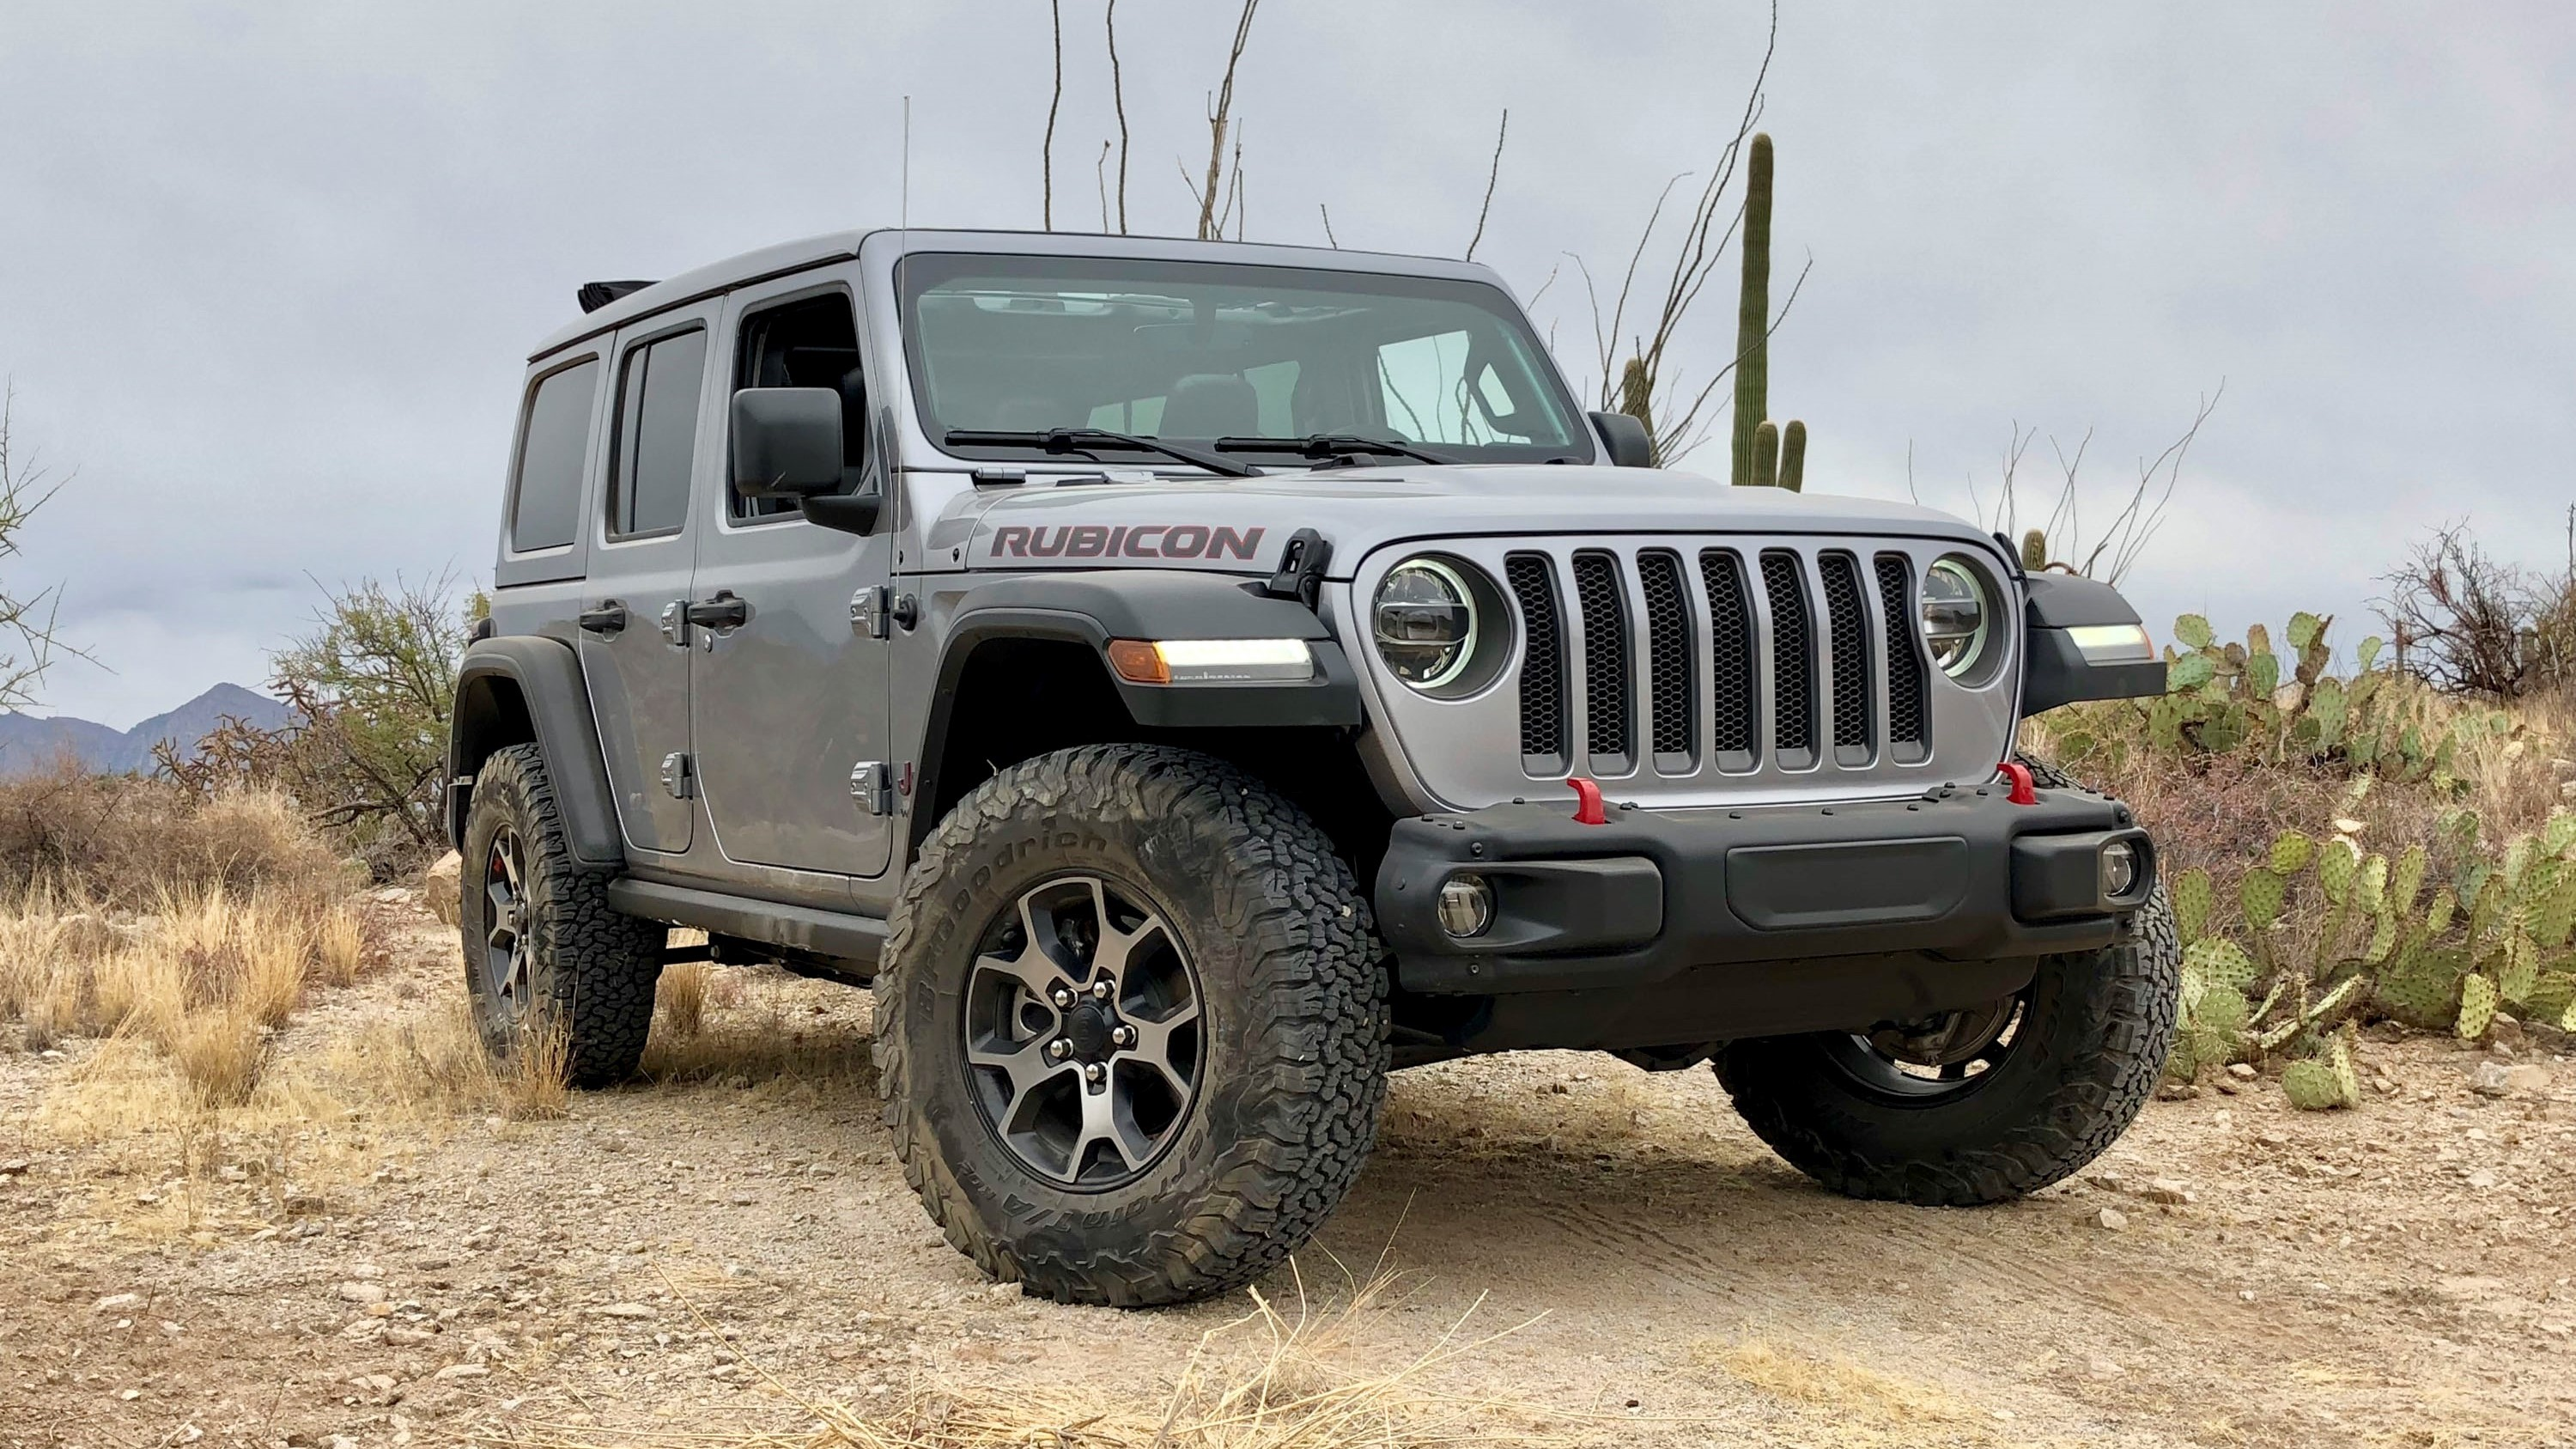 Driving The 2018 Jeep Wrangler JL Pictures, Photos ...